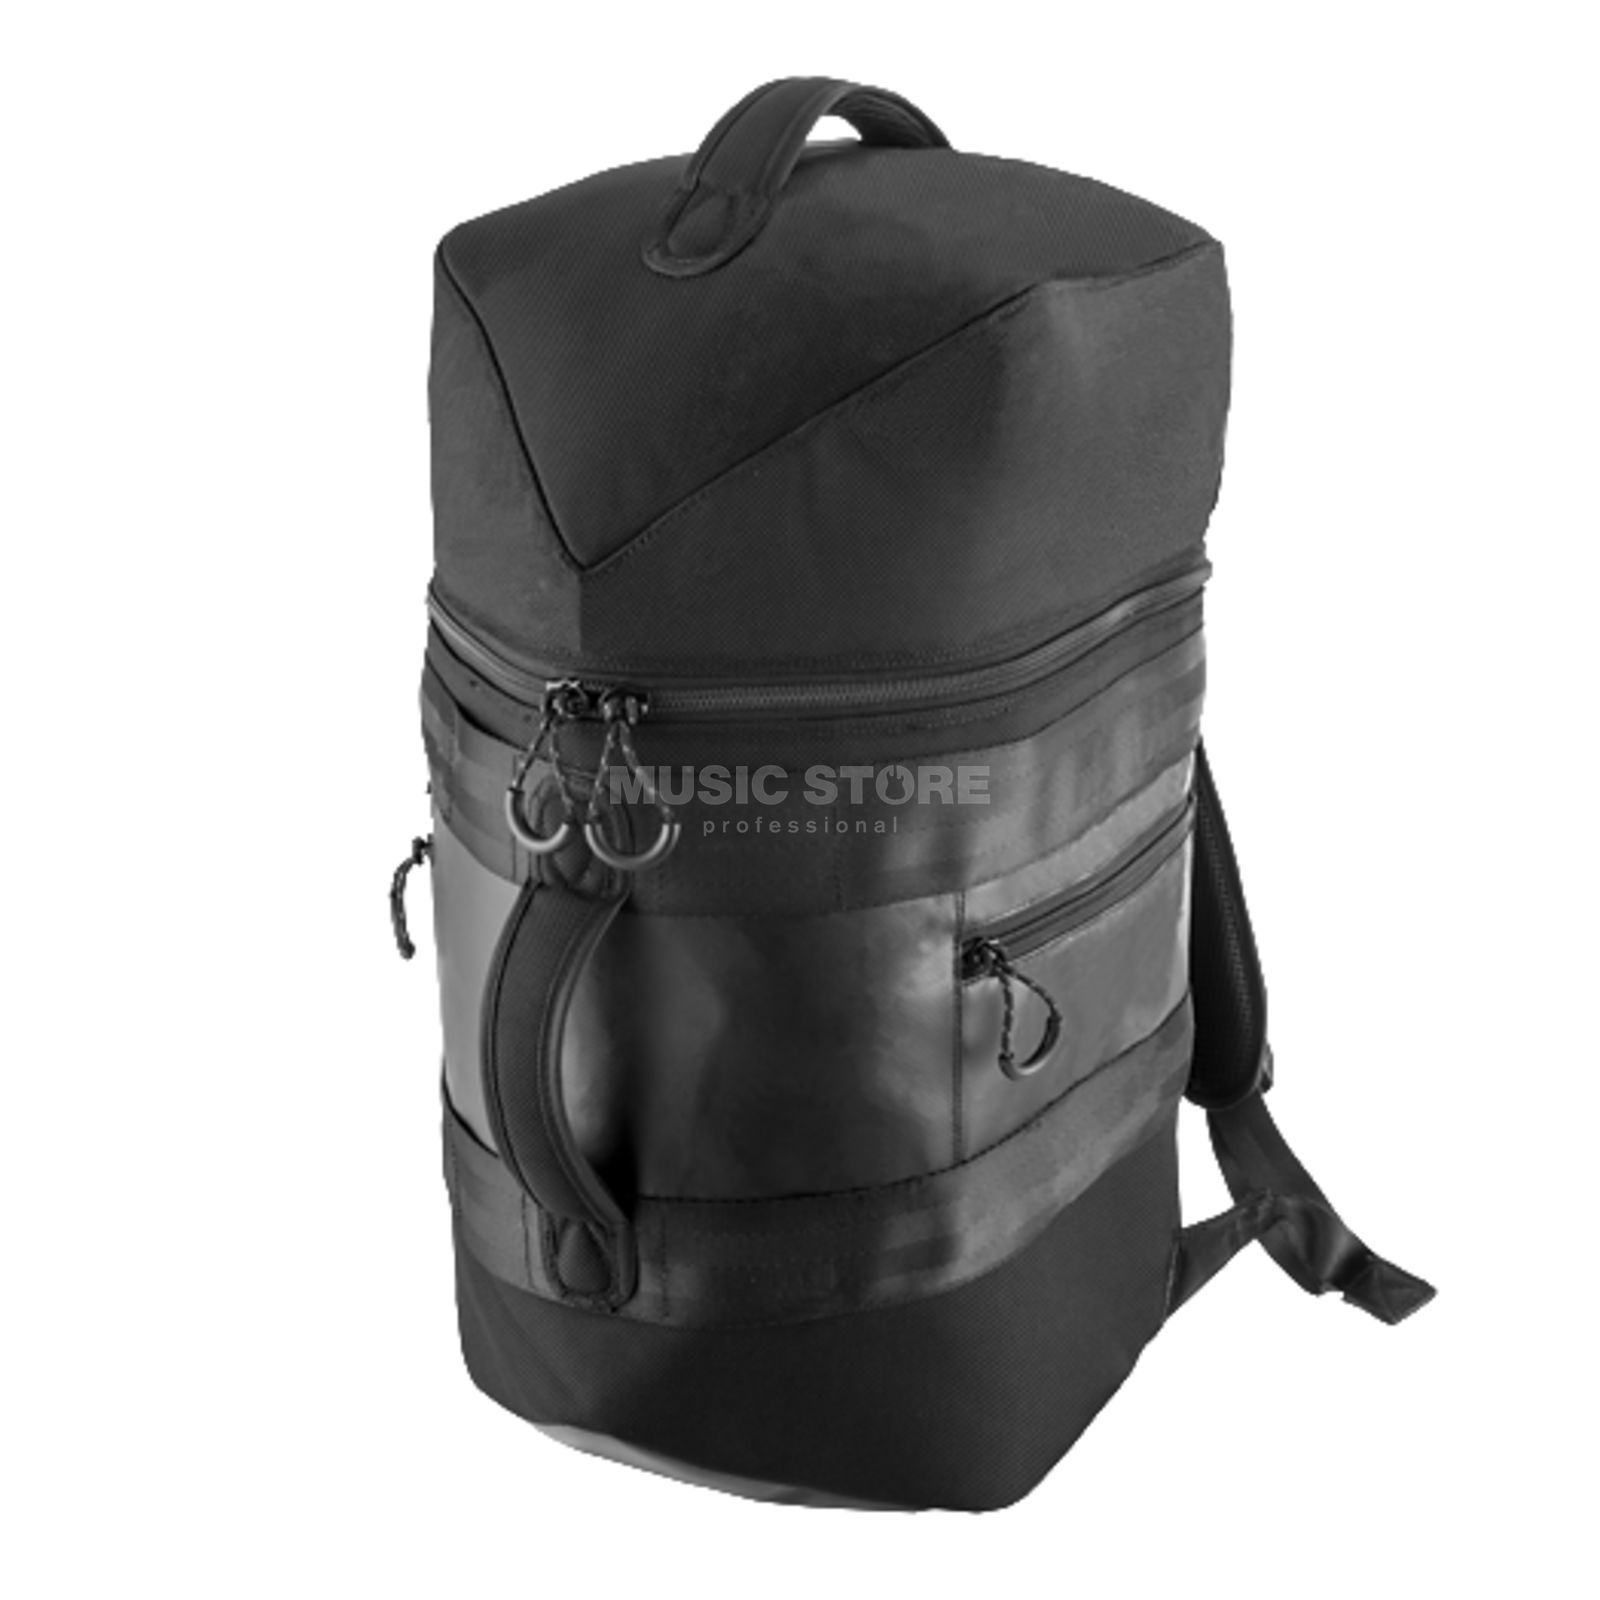 Bose S1 Pro Backpack Product Image